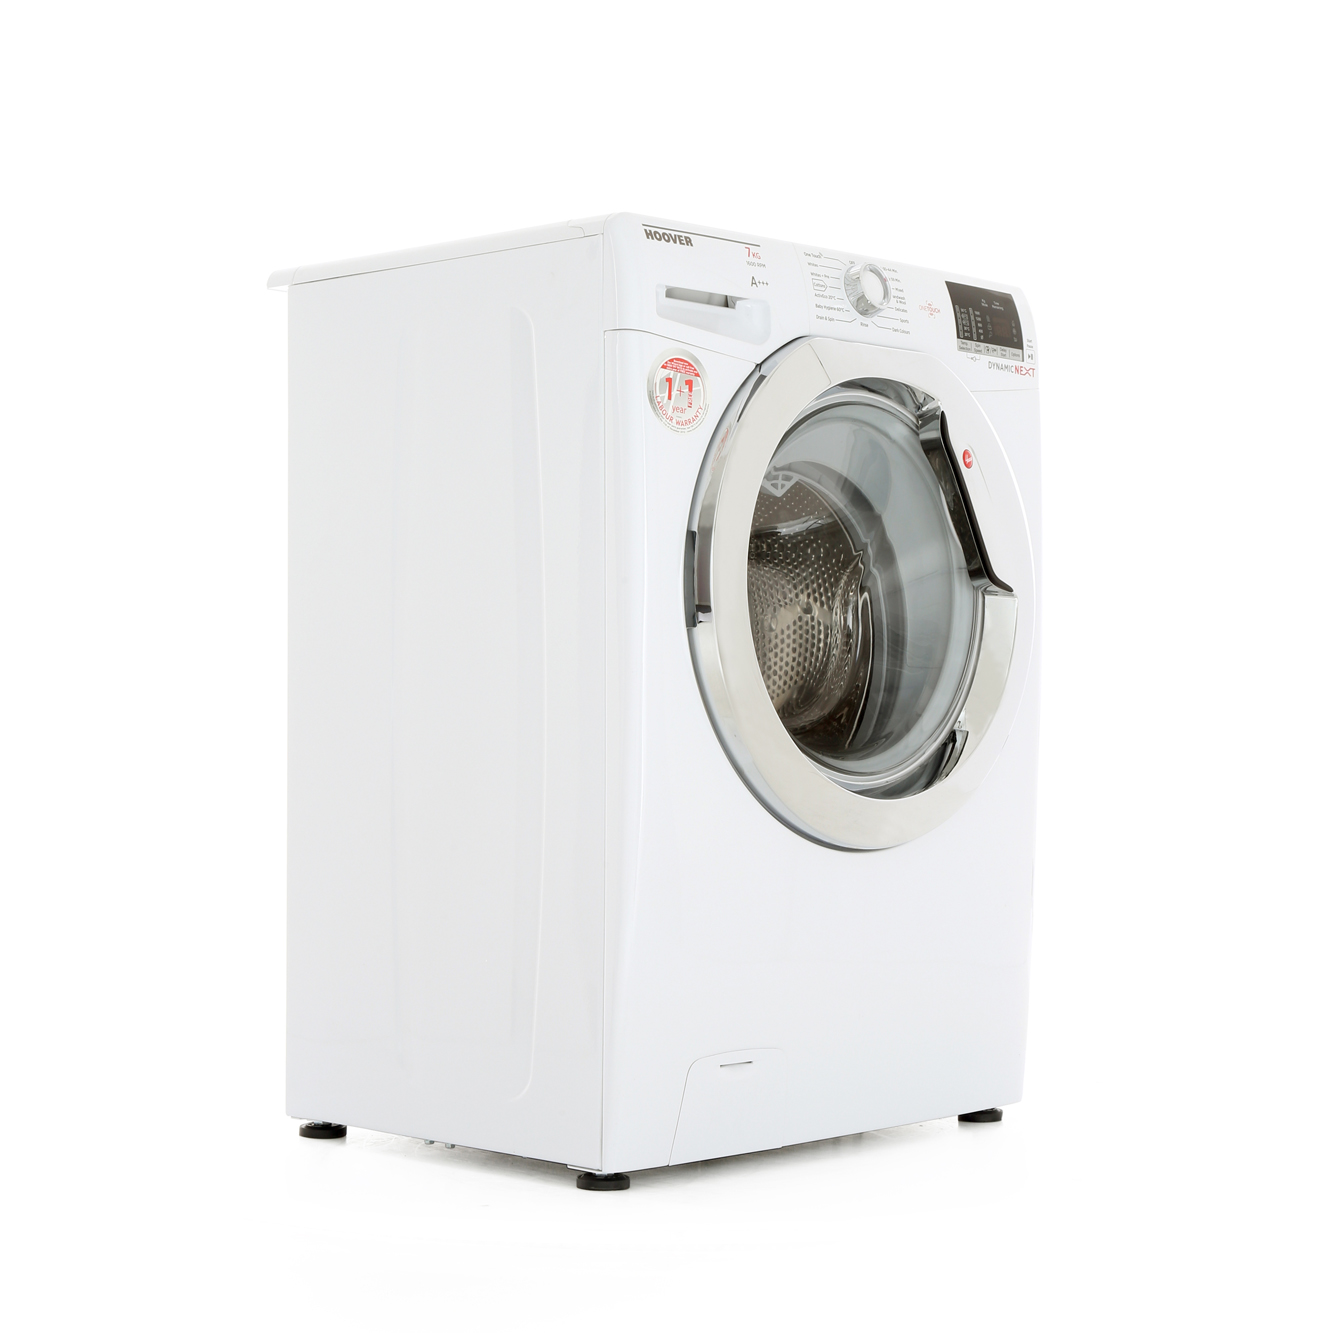 Hoover DXOC67C3 Washing Machine